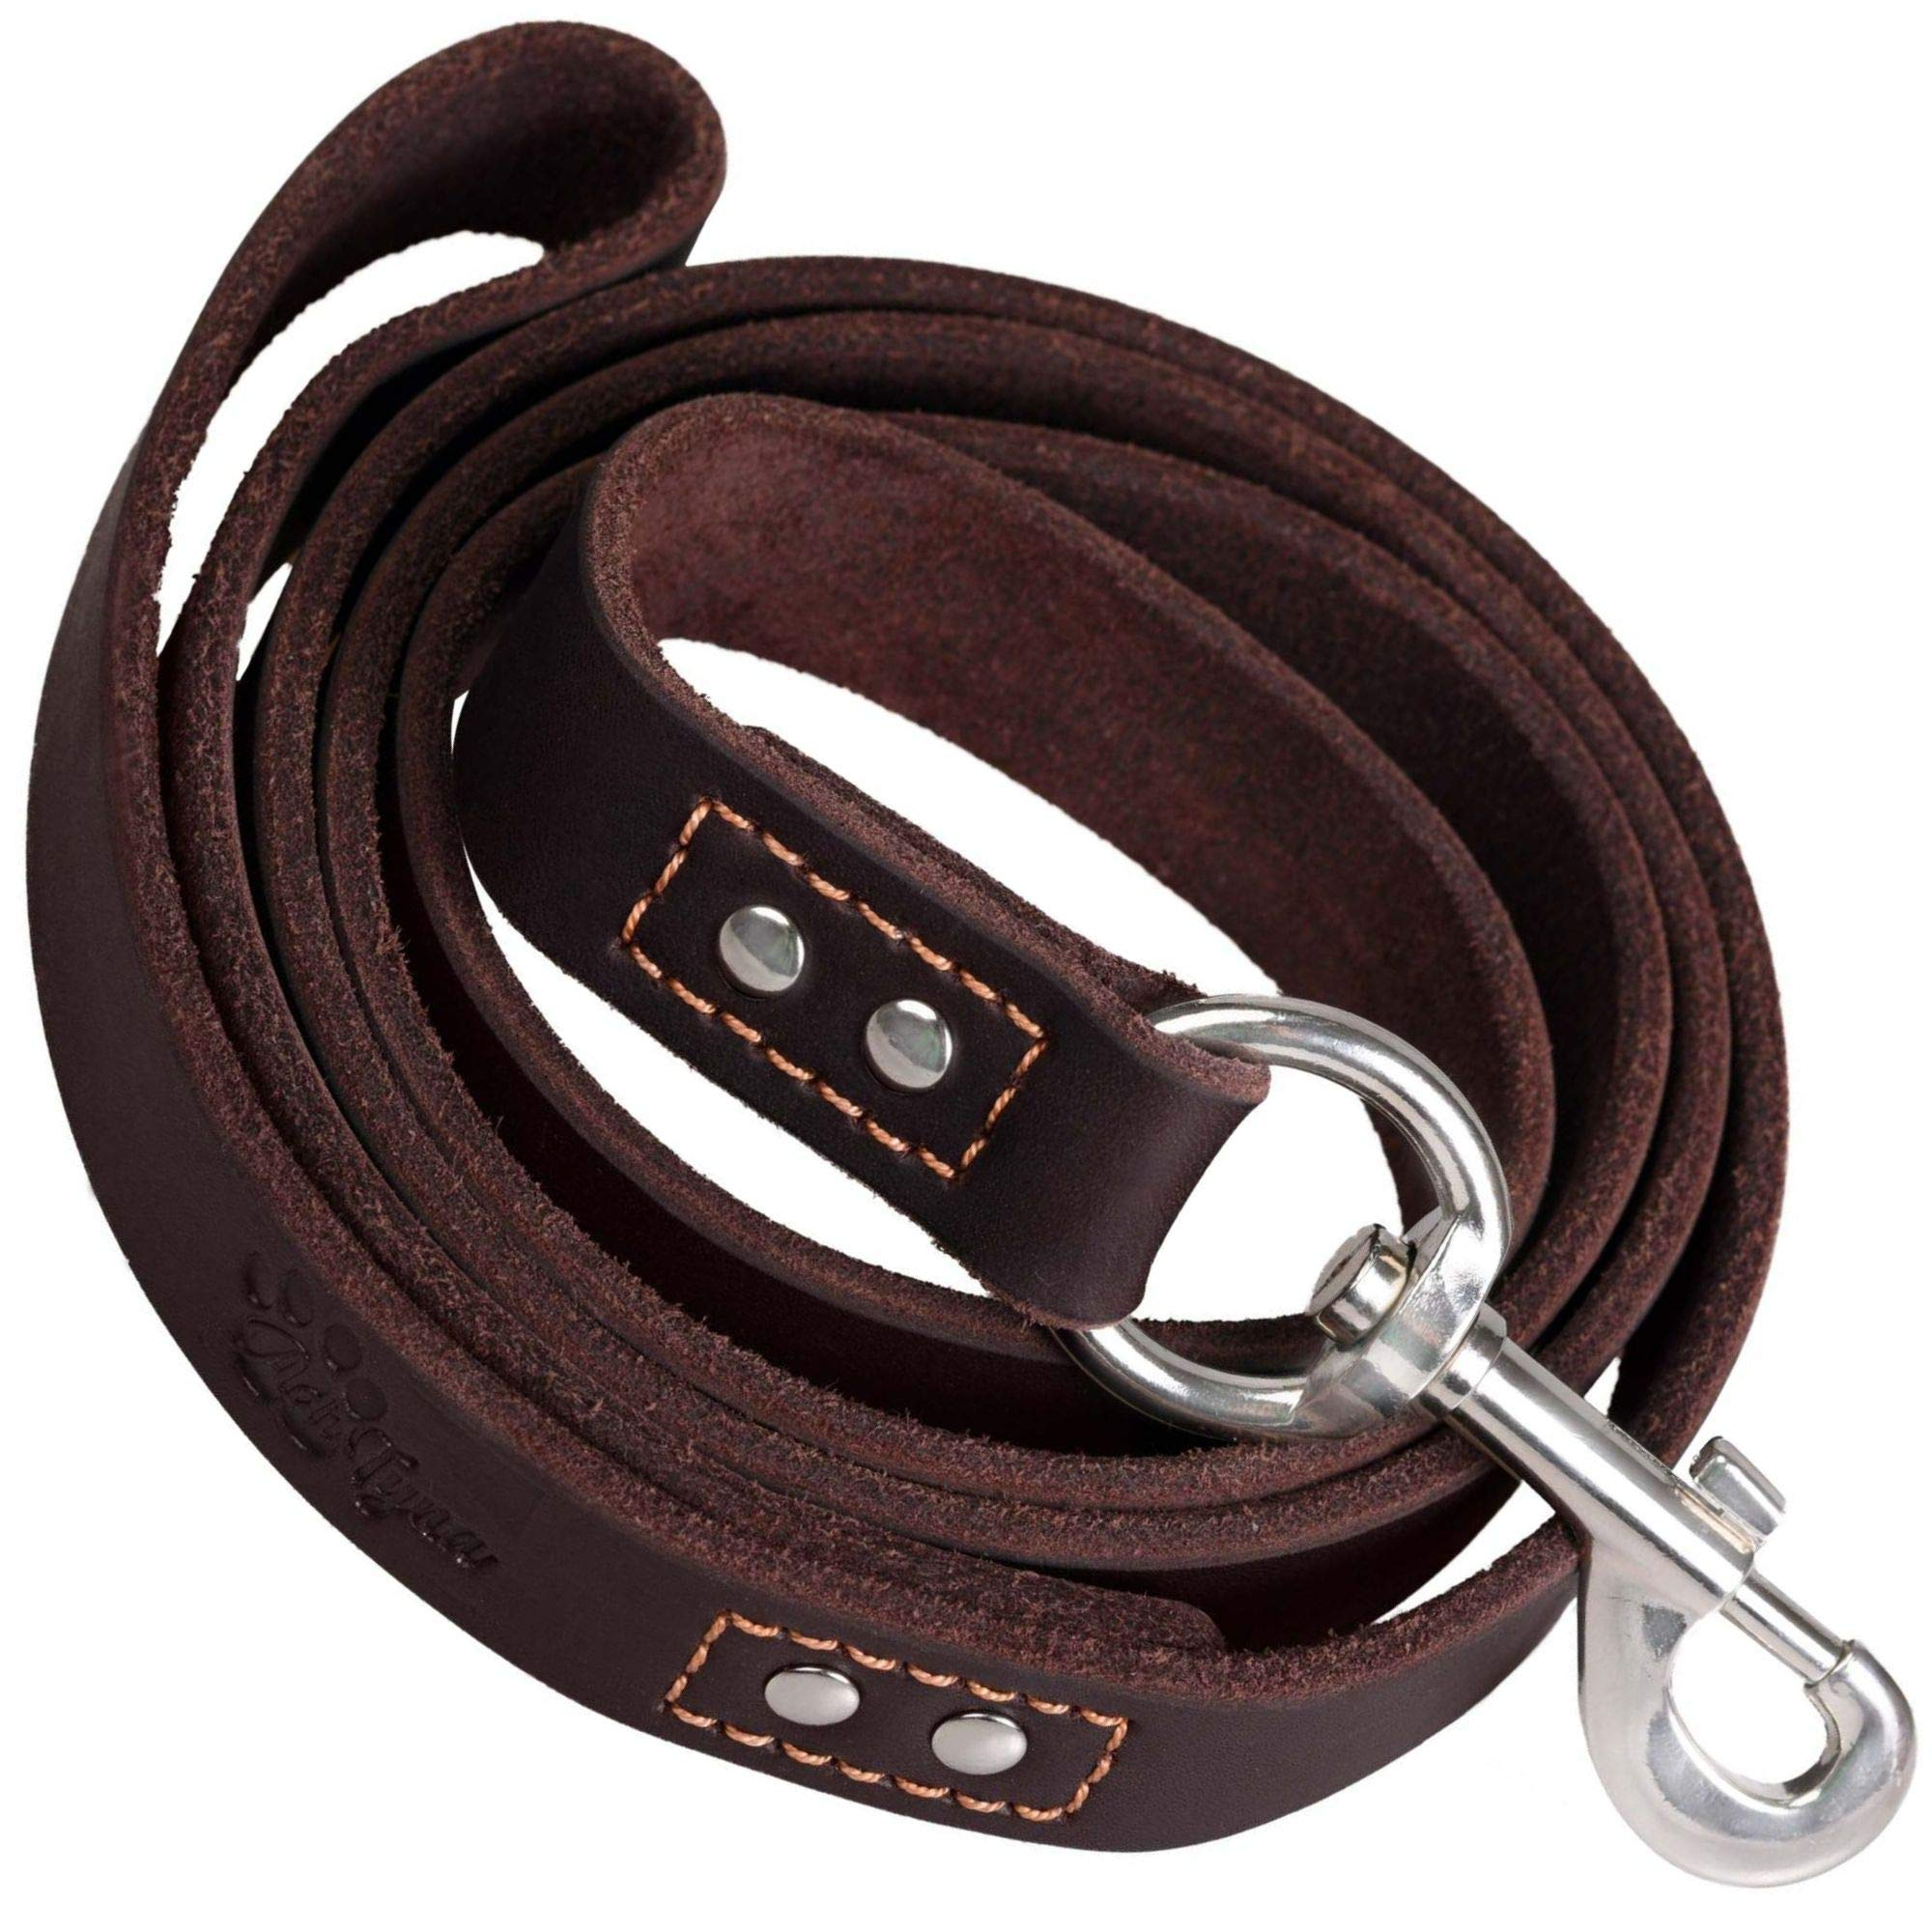 ADITYNA - Heavy Duty Leather Dog Leash 6 Foot - Strong and Soft Leather Leash for Extra Large, Large and Medium Dogs - Dog Training Leash (XL - 6 ft x 1 inch, Brown) by ADITYNA